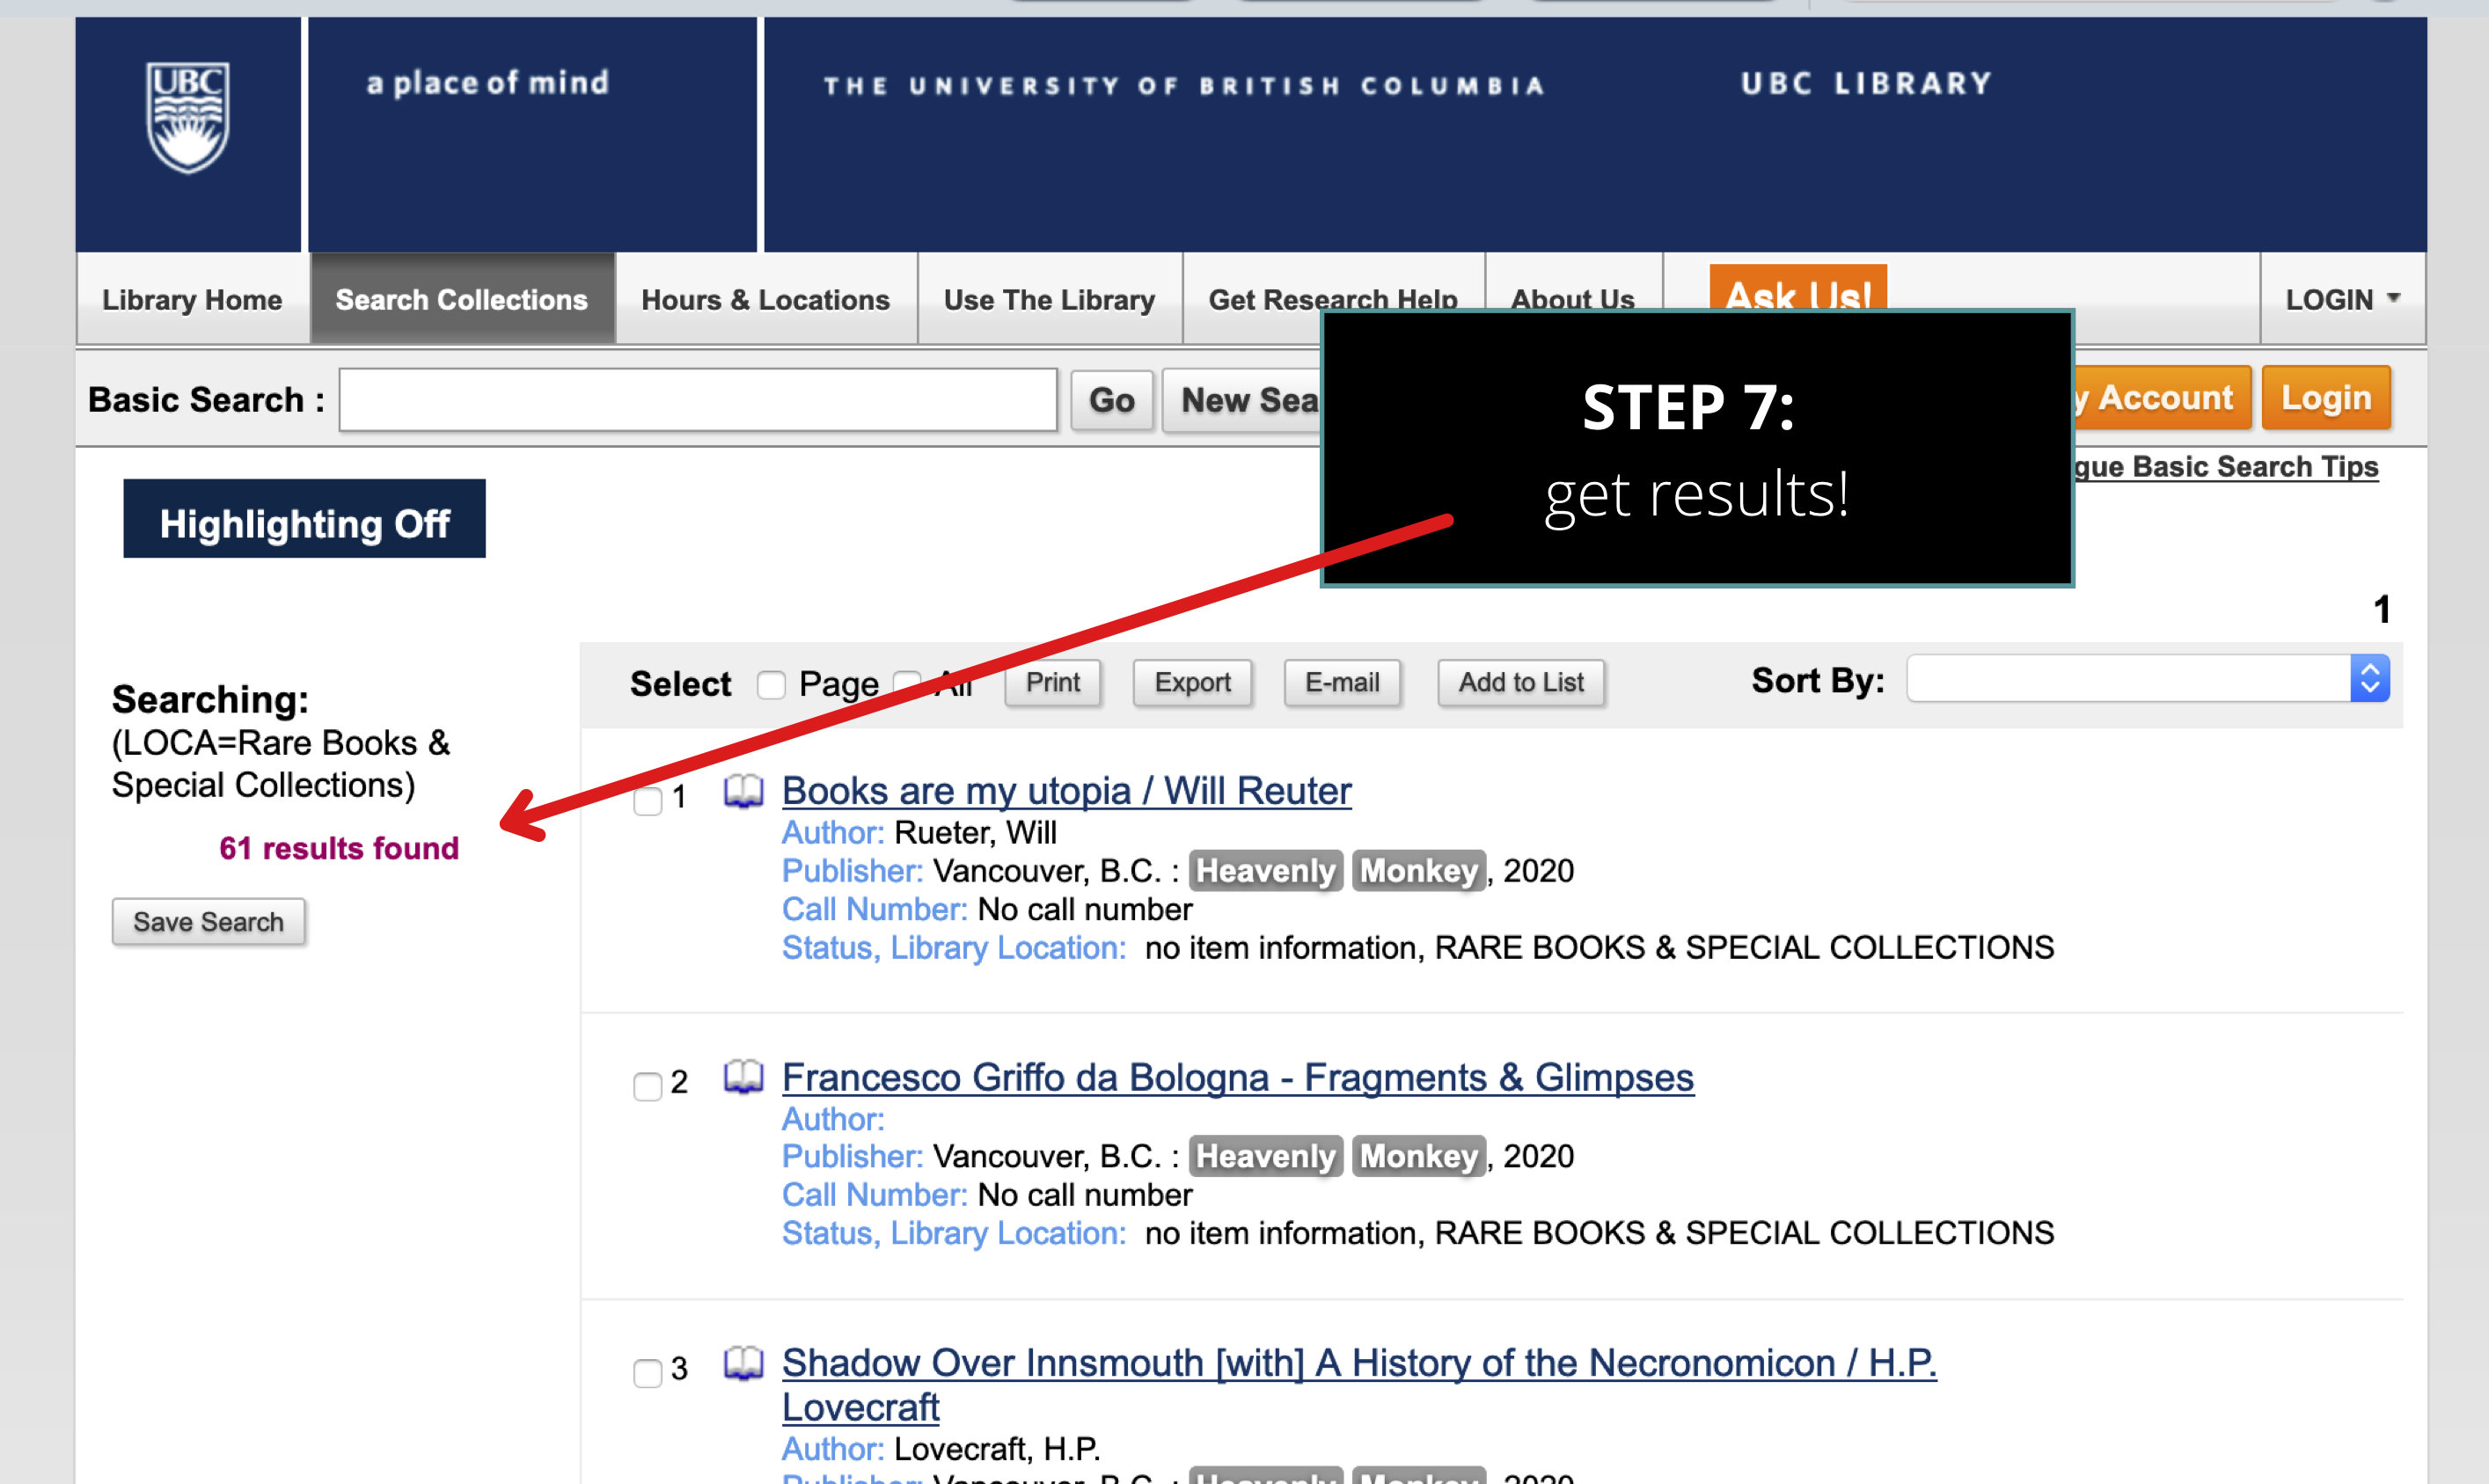 screenshot of UBC Library catalog search results for books published by Heavenly Monkey